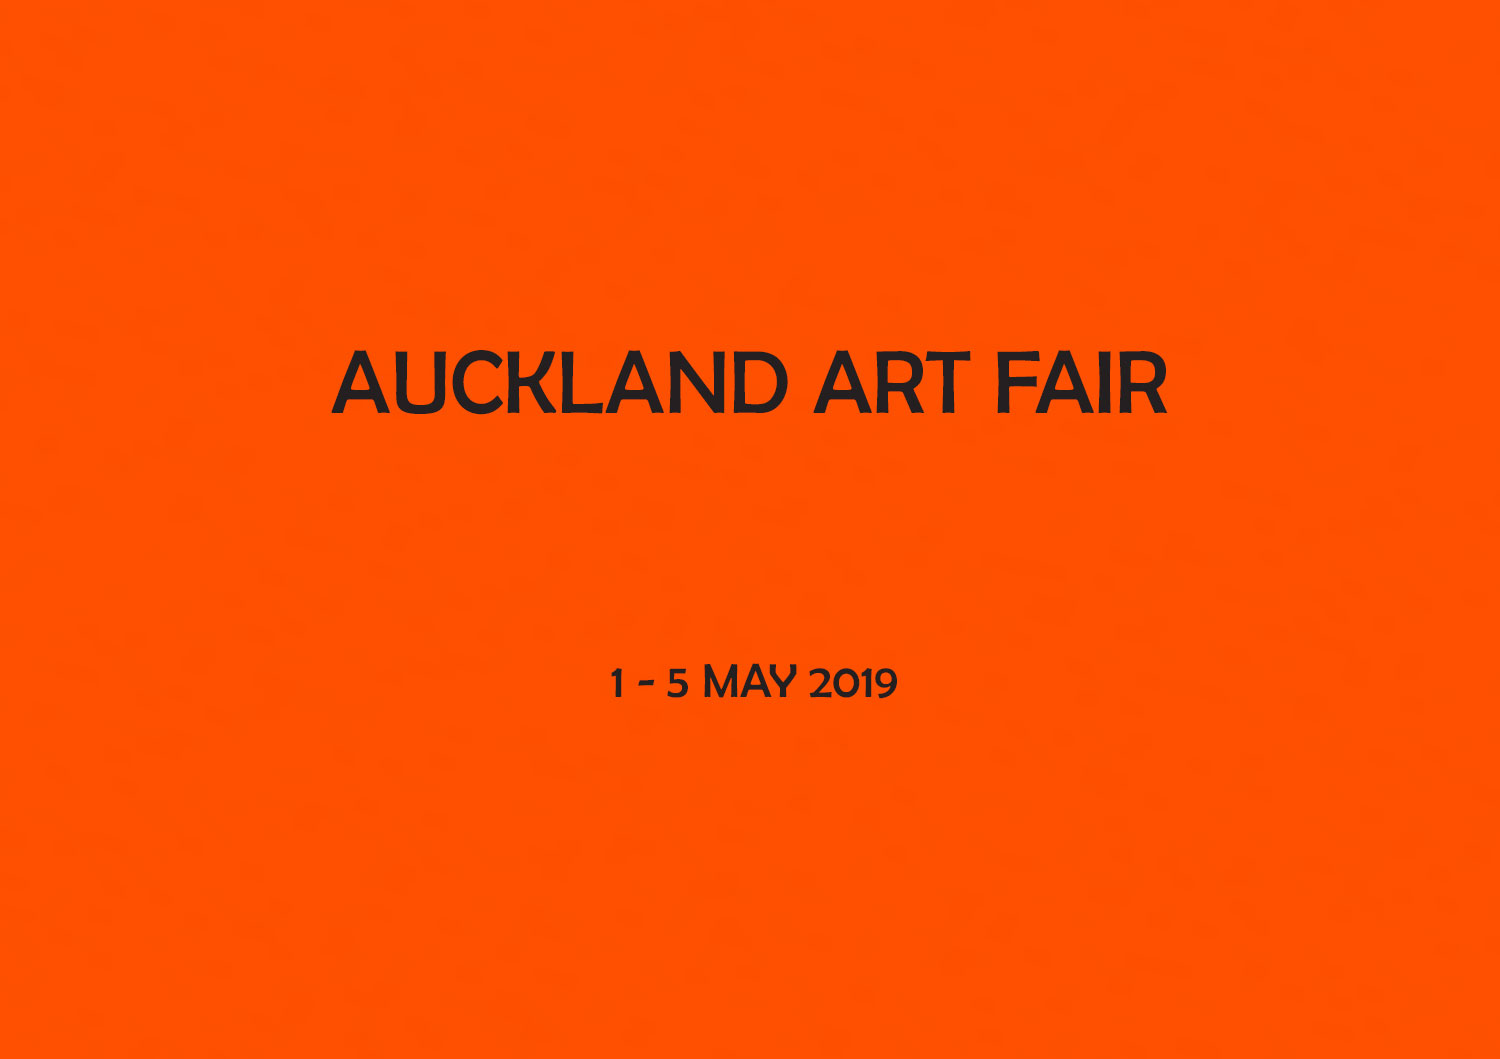 Website-Exhibition-Cover-Image_AAF.jpg